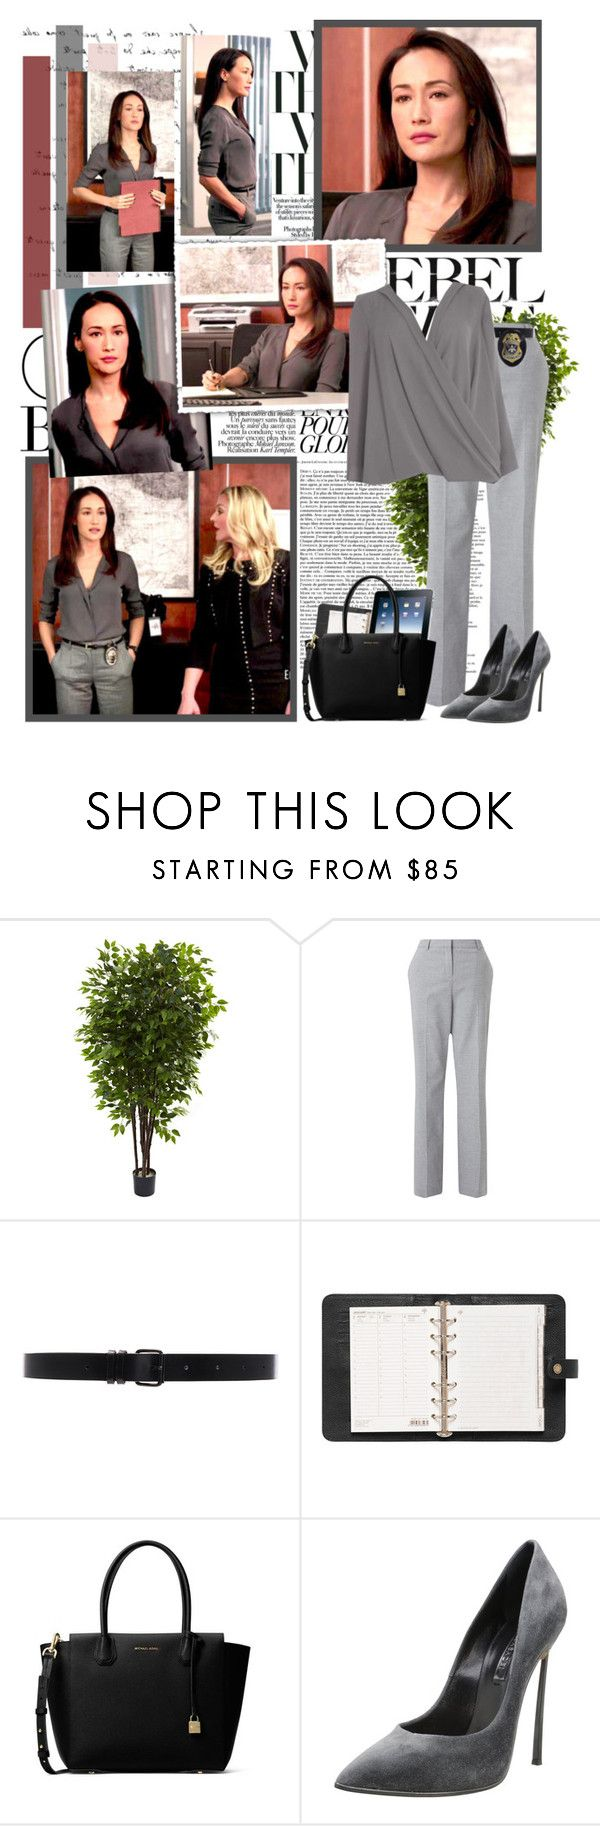 """""""Beth Davis"""" by productionkid ❤ liked on Polyvore featuring Nearly Natural, John Lewis, Ann Demeulemeester, Dorothy Perkins, Mulberry, MICHAEL Michael Kors, Casadei, stalker, MaggieQ and StalkerCBS"""